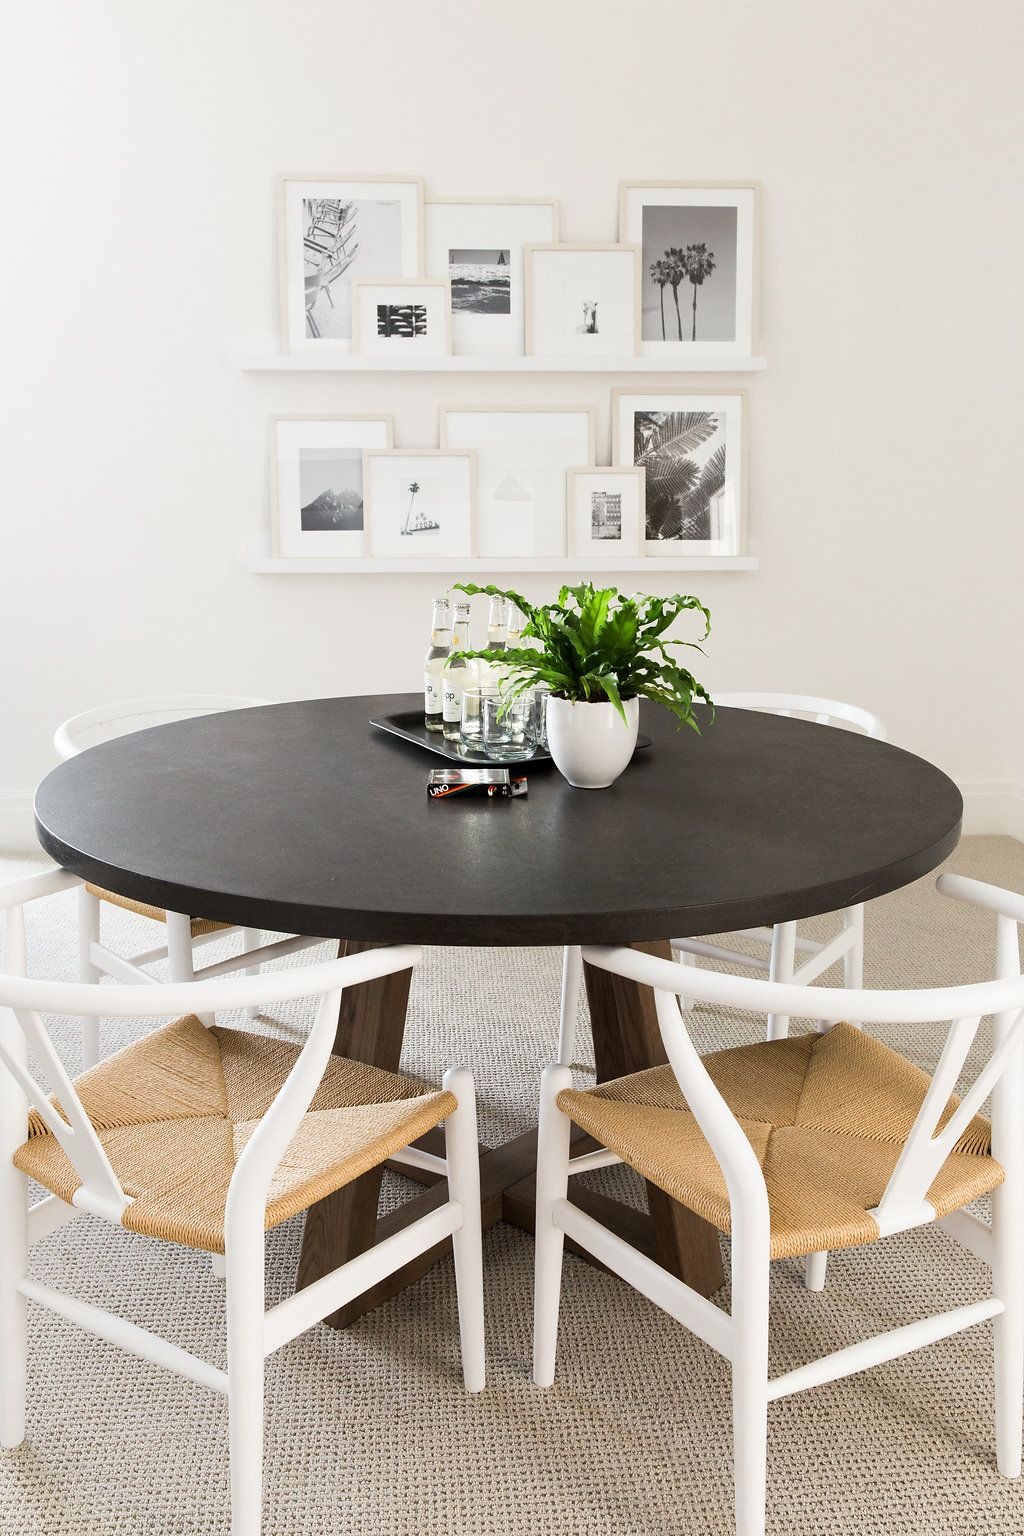 Parade Home Reveal - Pt. 1 | Studio mcgee, Home, Dining table